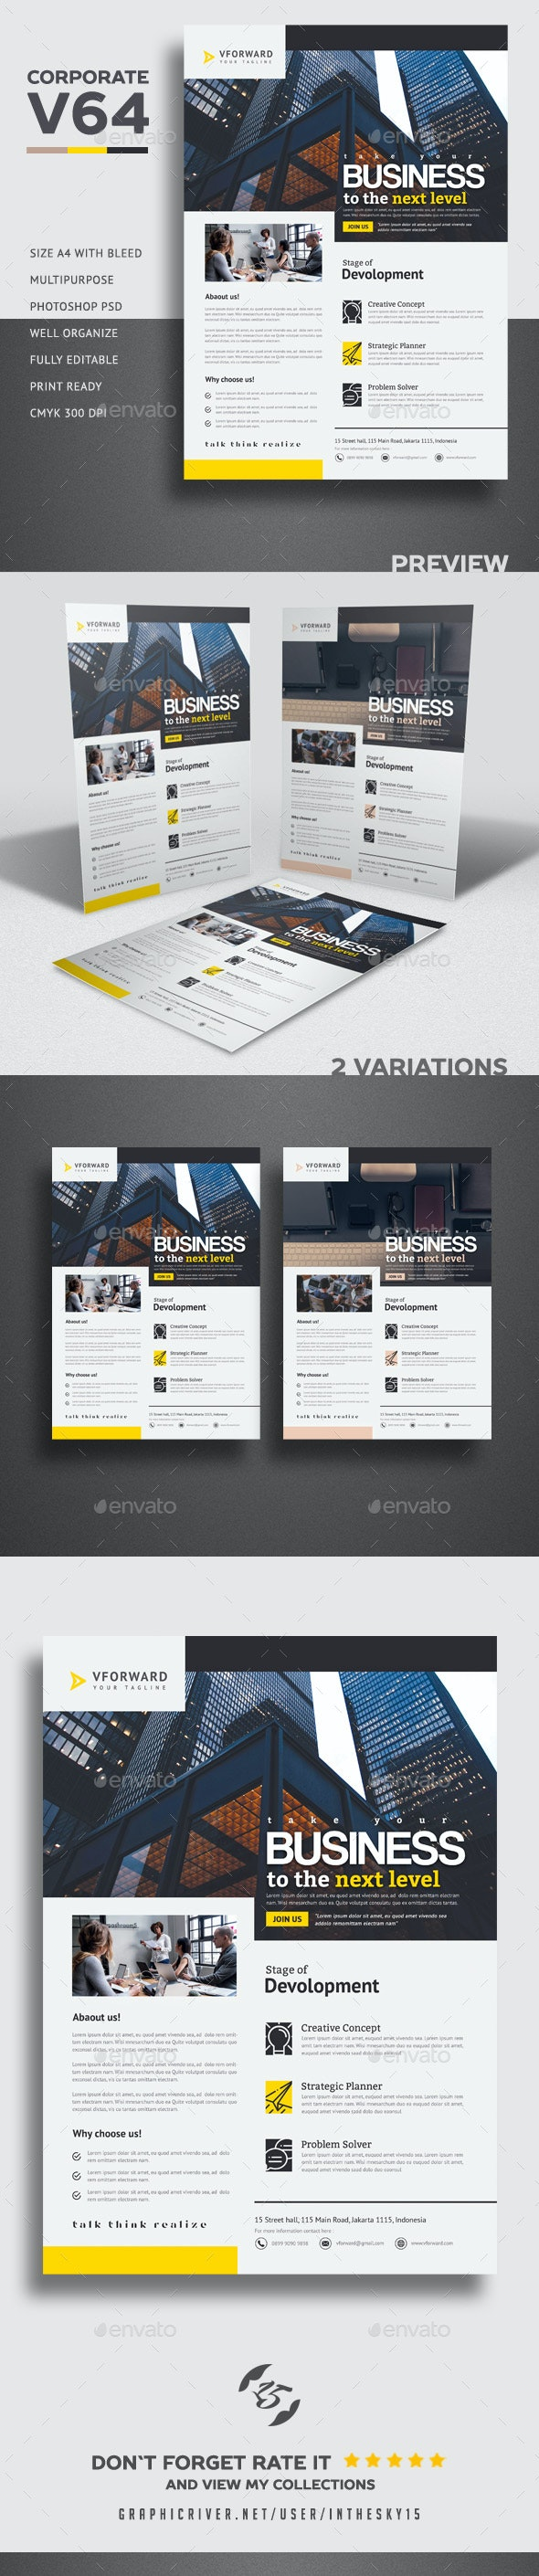 Corporate V64 Flyer - Corporate Flyers